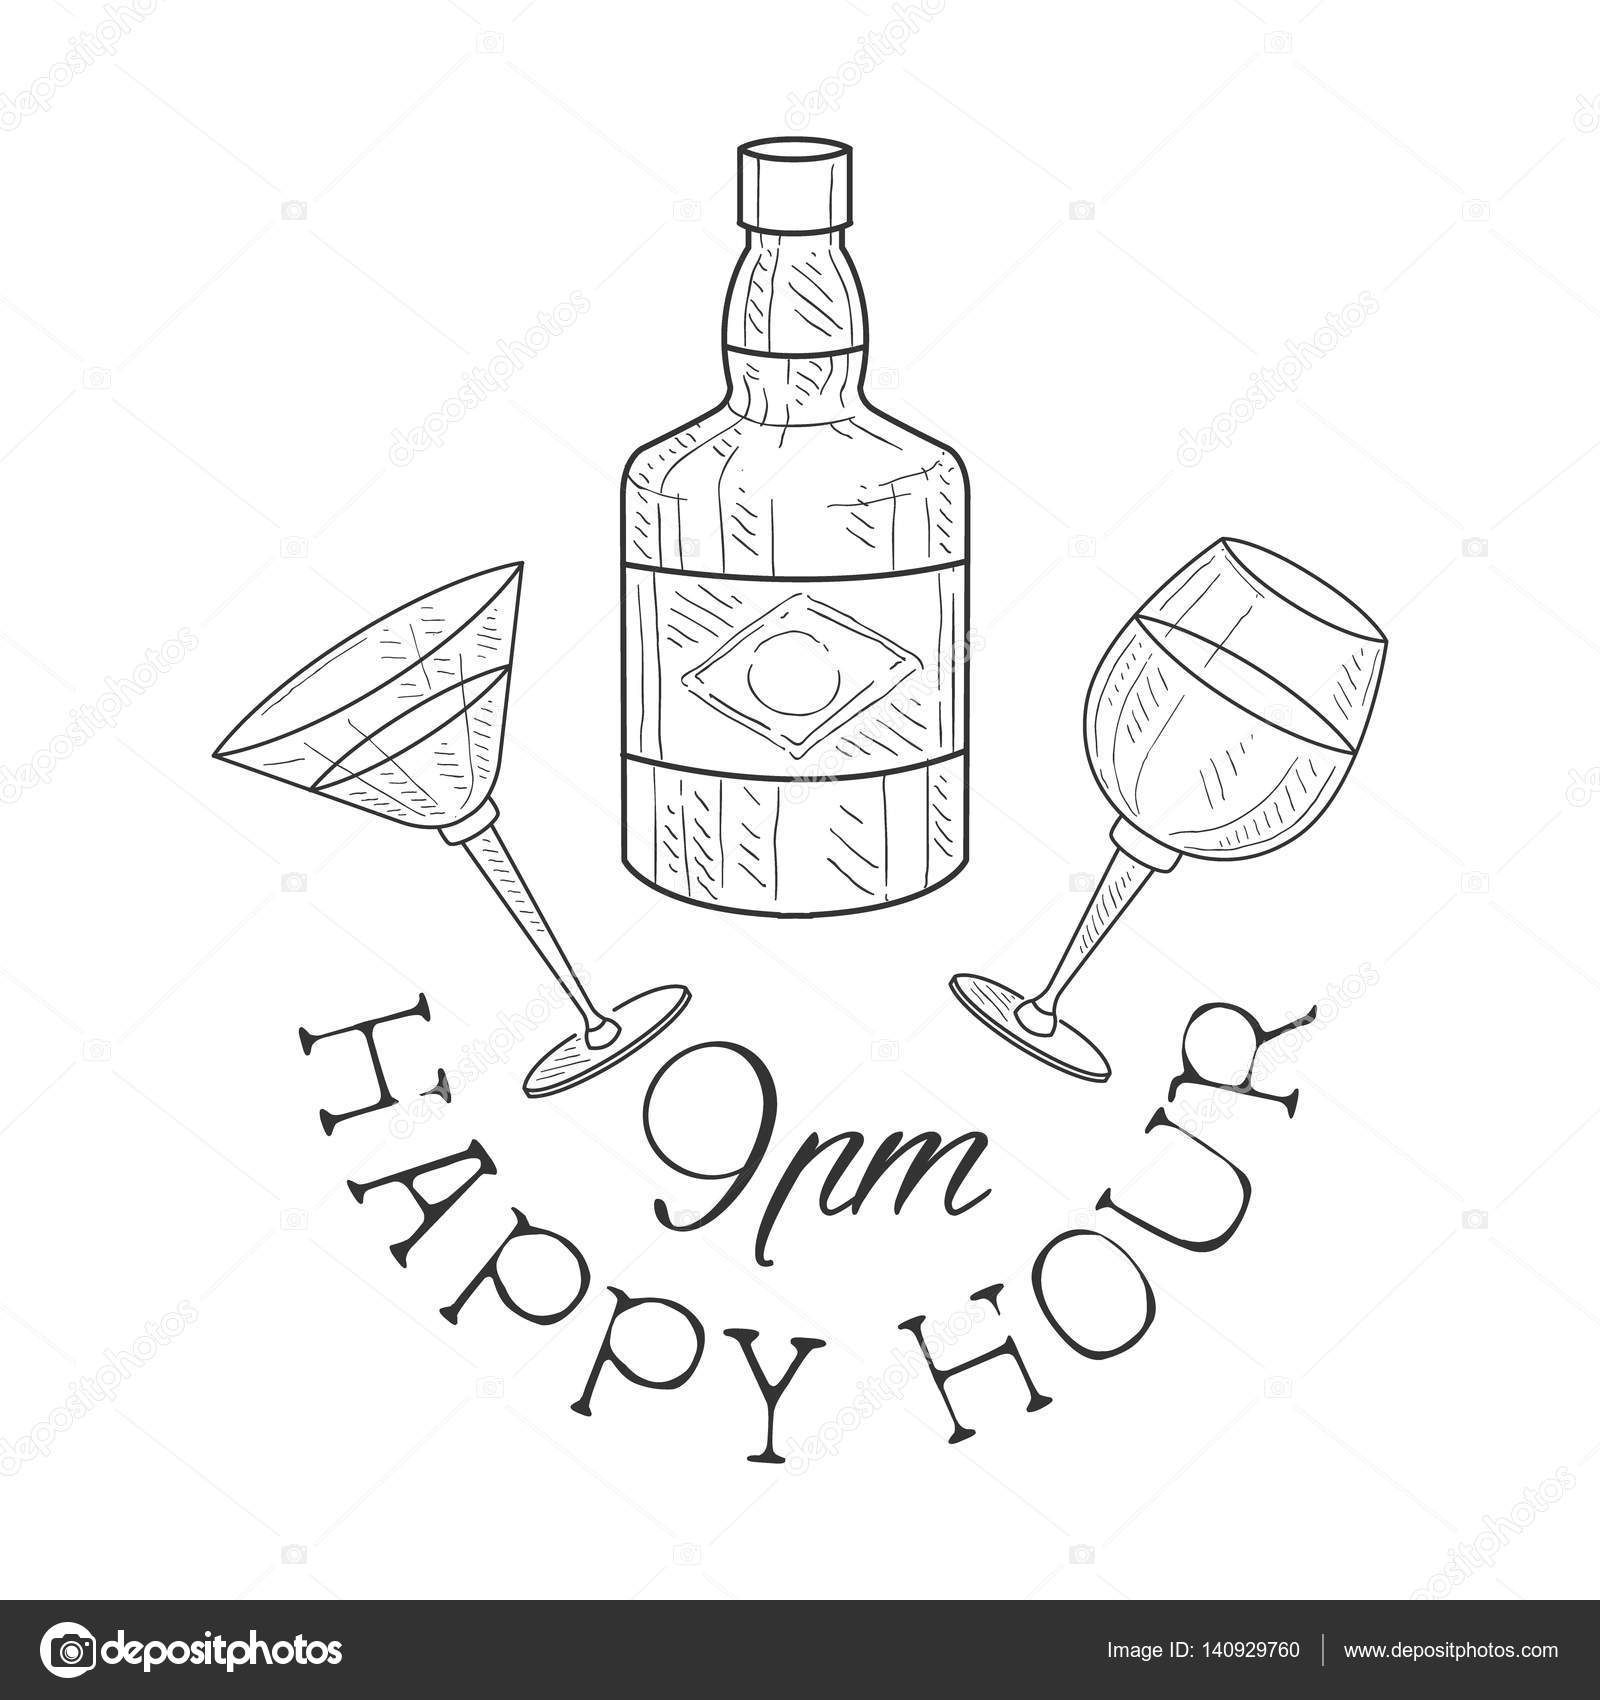 Drawn sign wine Illustration Happy Sketch Hand Promotion